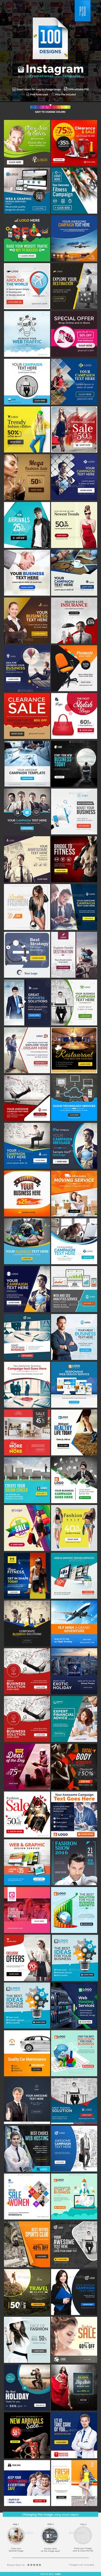 Instagram Ad Templates - 100 Banners Templates PSD. Download here: http://graphicriver.net/item/instagram-ad-templates-100-banners/16516789?ref=ksioks